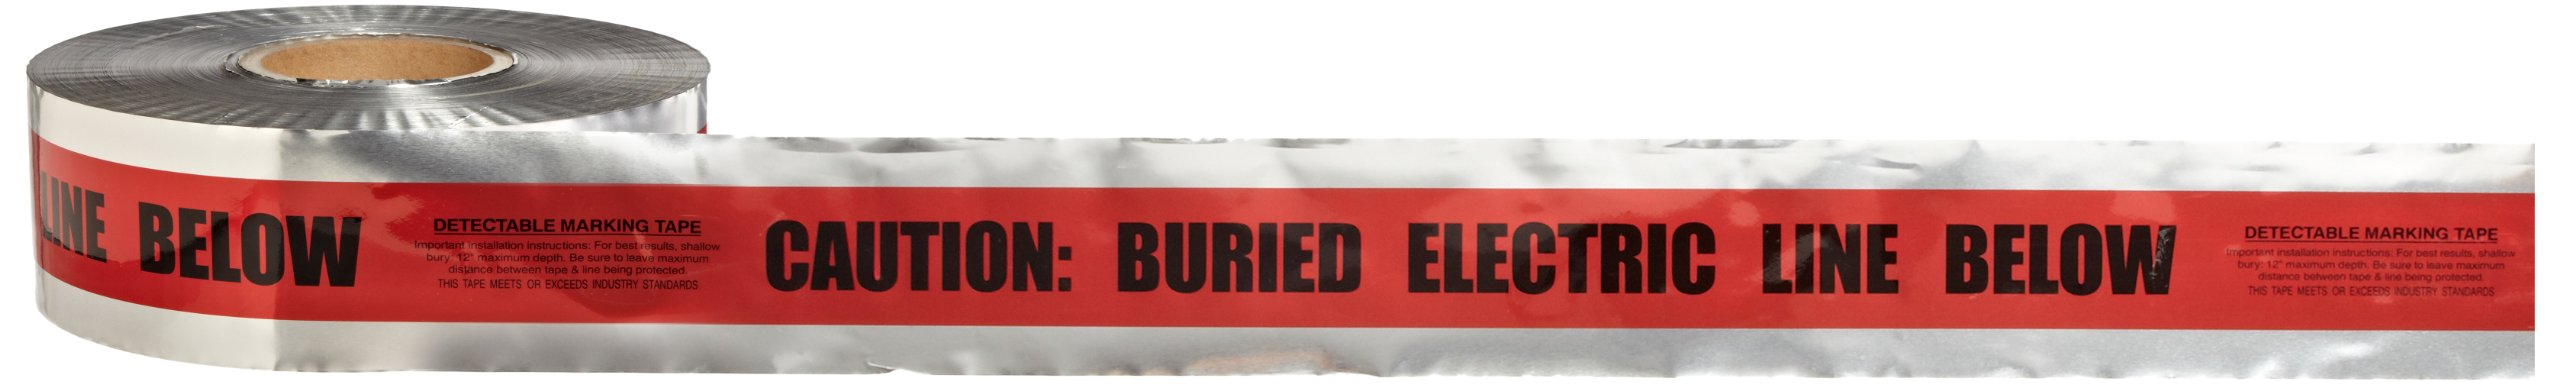 Scotch Detectable Buried Barricade Tape 406, CAUTION BURIED ELECTRIC LINE BELOW, 3 in x 1000 ft, Red